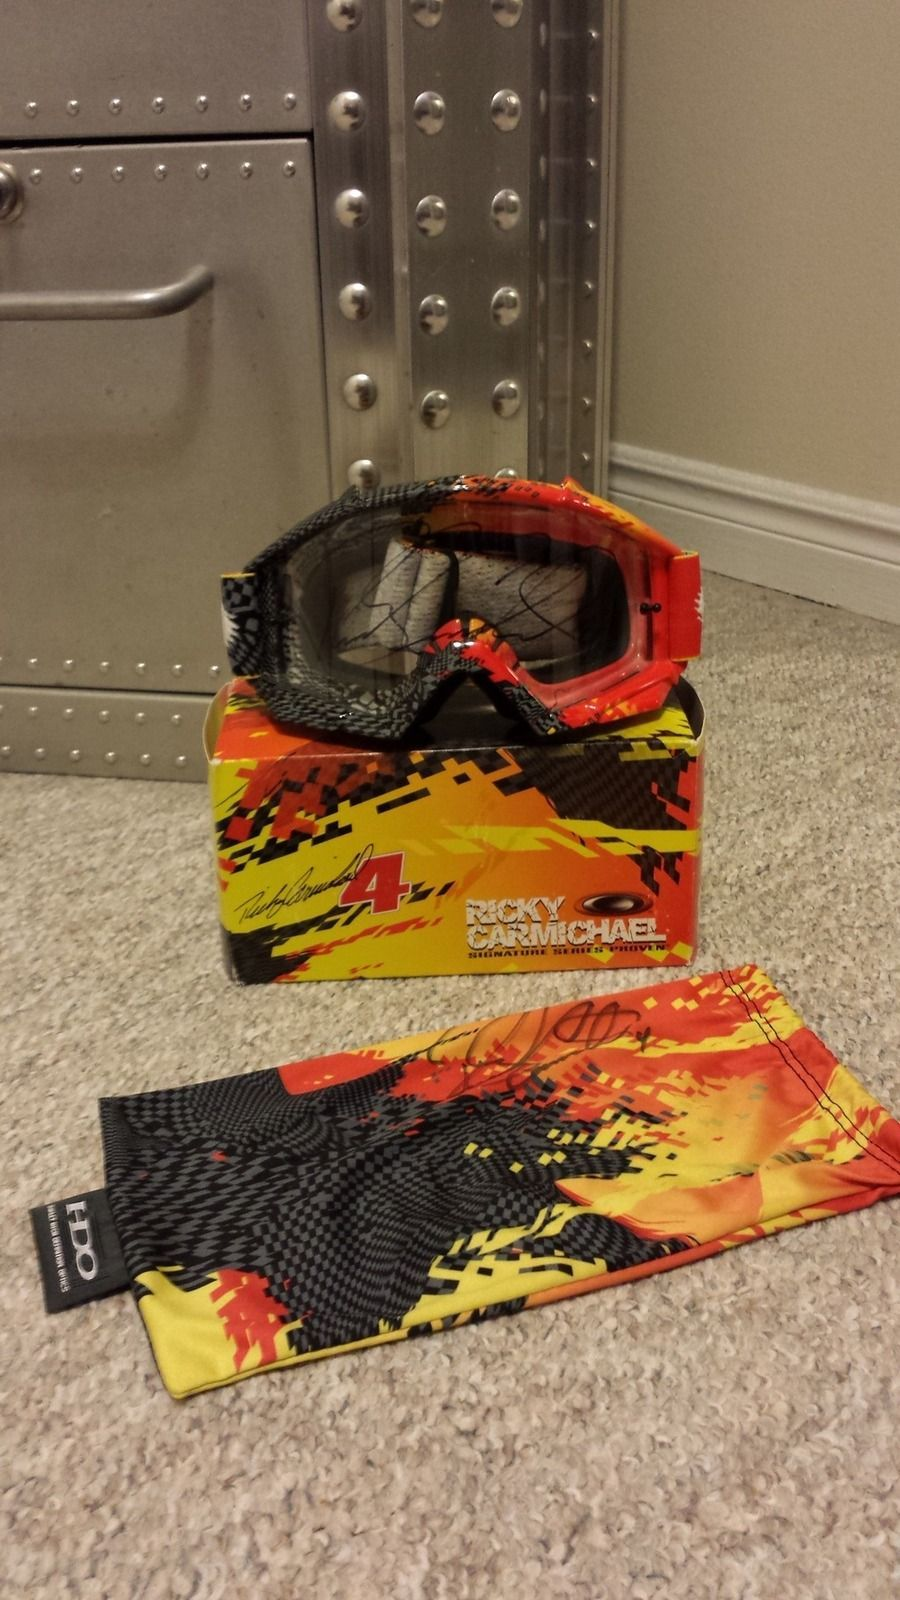 OR FS: OTT FMJ Fire used, Heritage Eyeshade fire and RC MX Goggles - 20150427_231759_zps6dfld6st.jpg